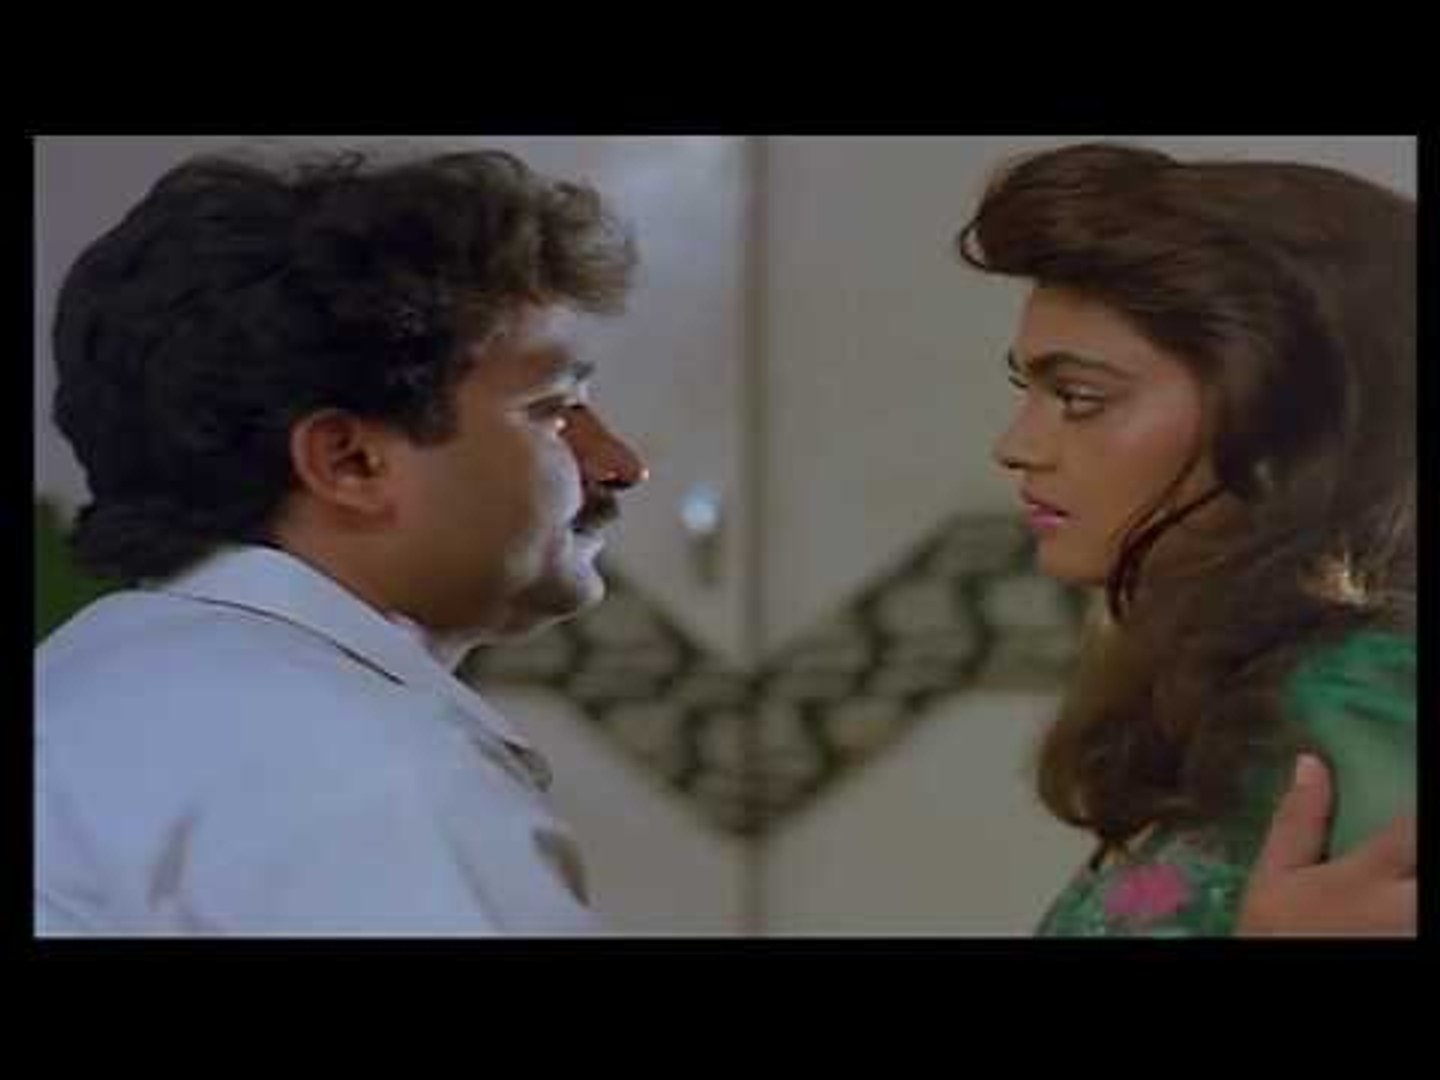 Tamil Movie Full Movie - Play Girls - Romantic Movie Scene 5